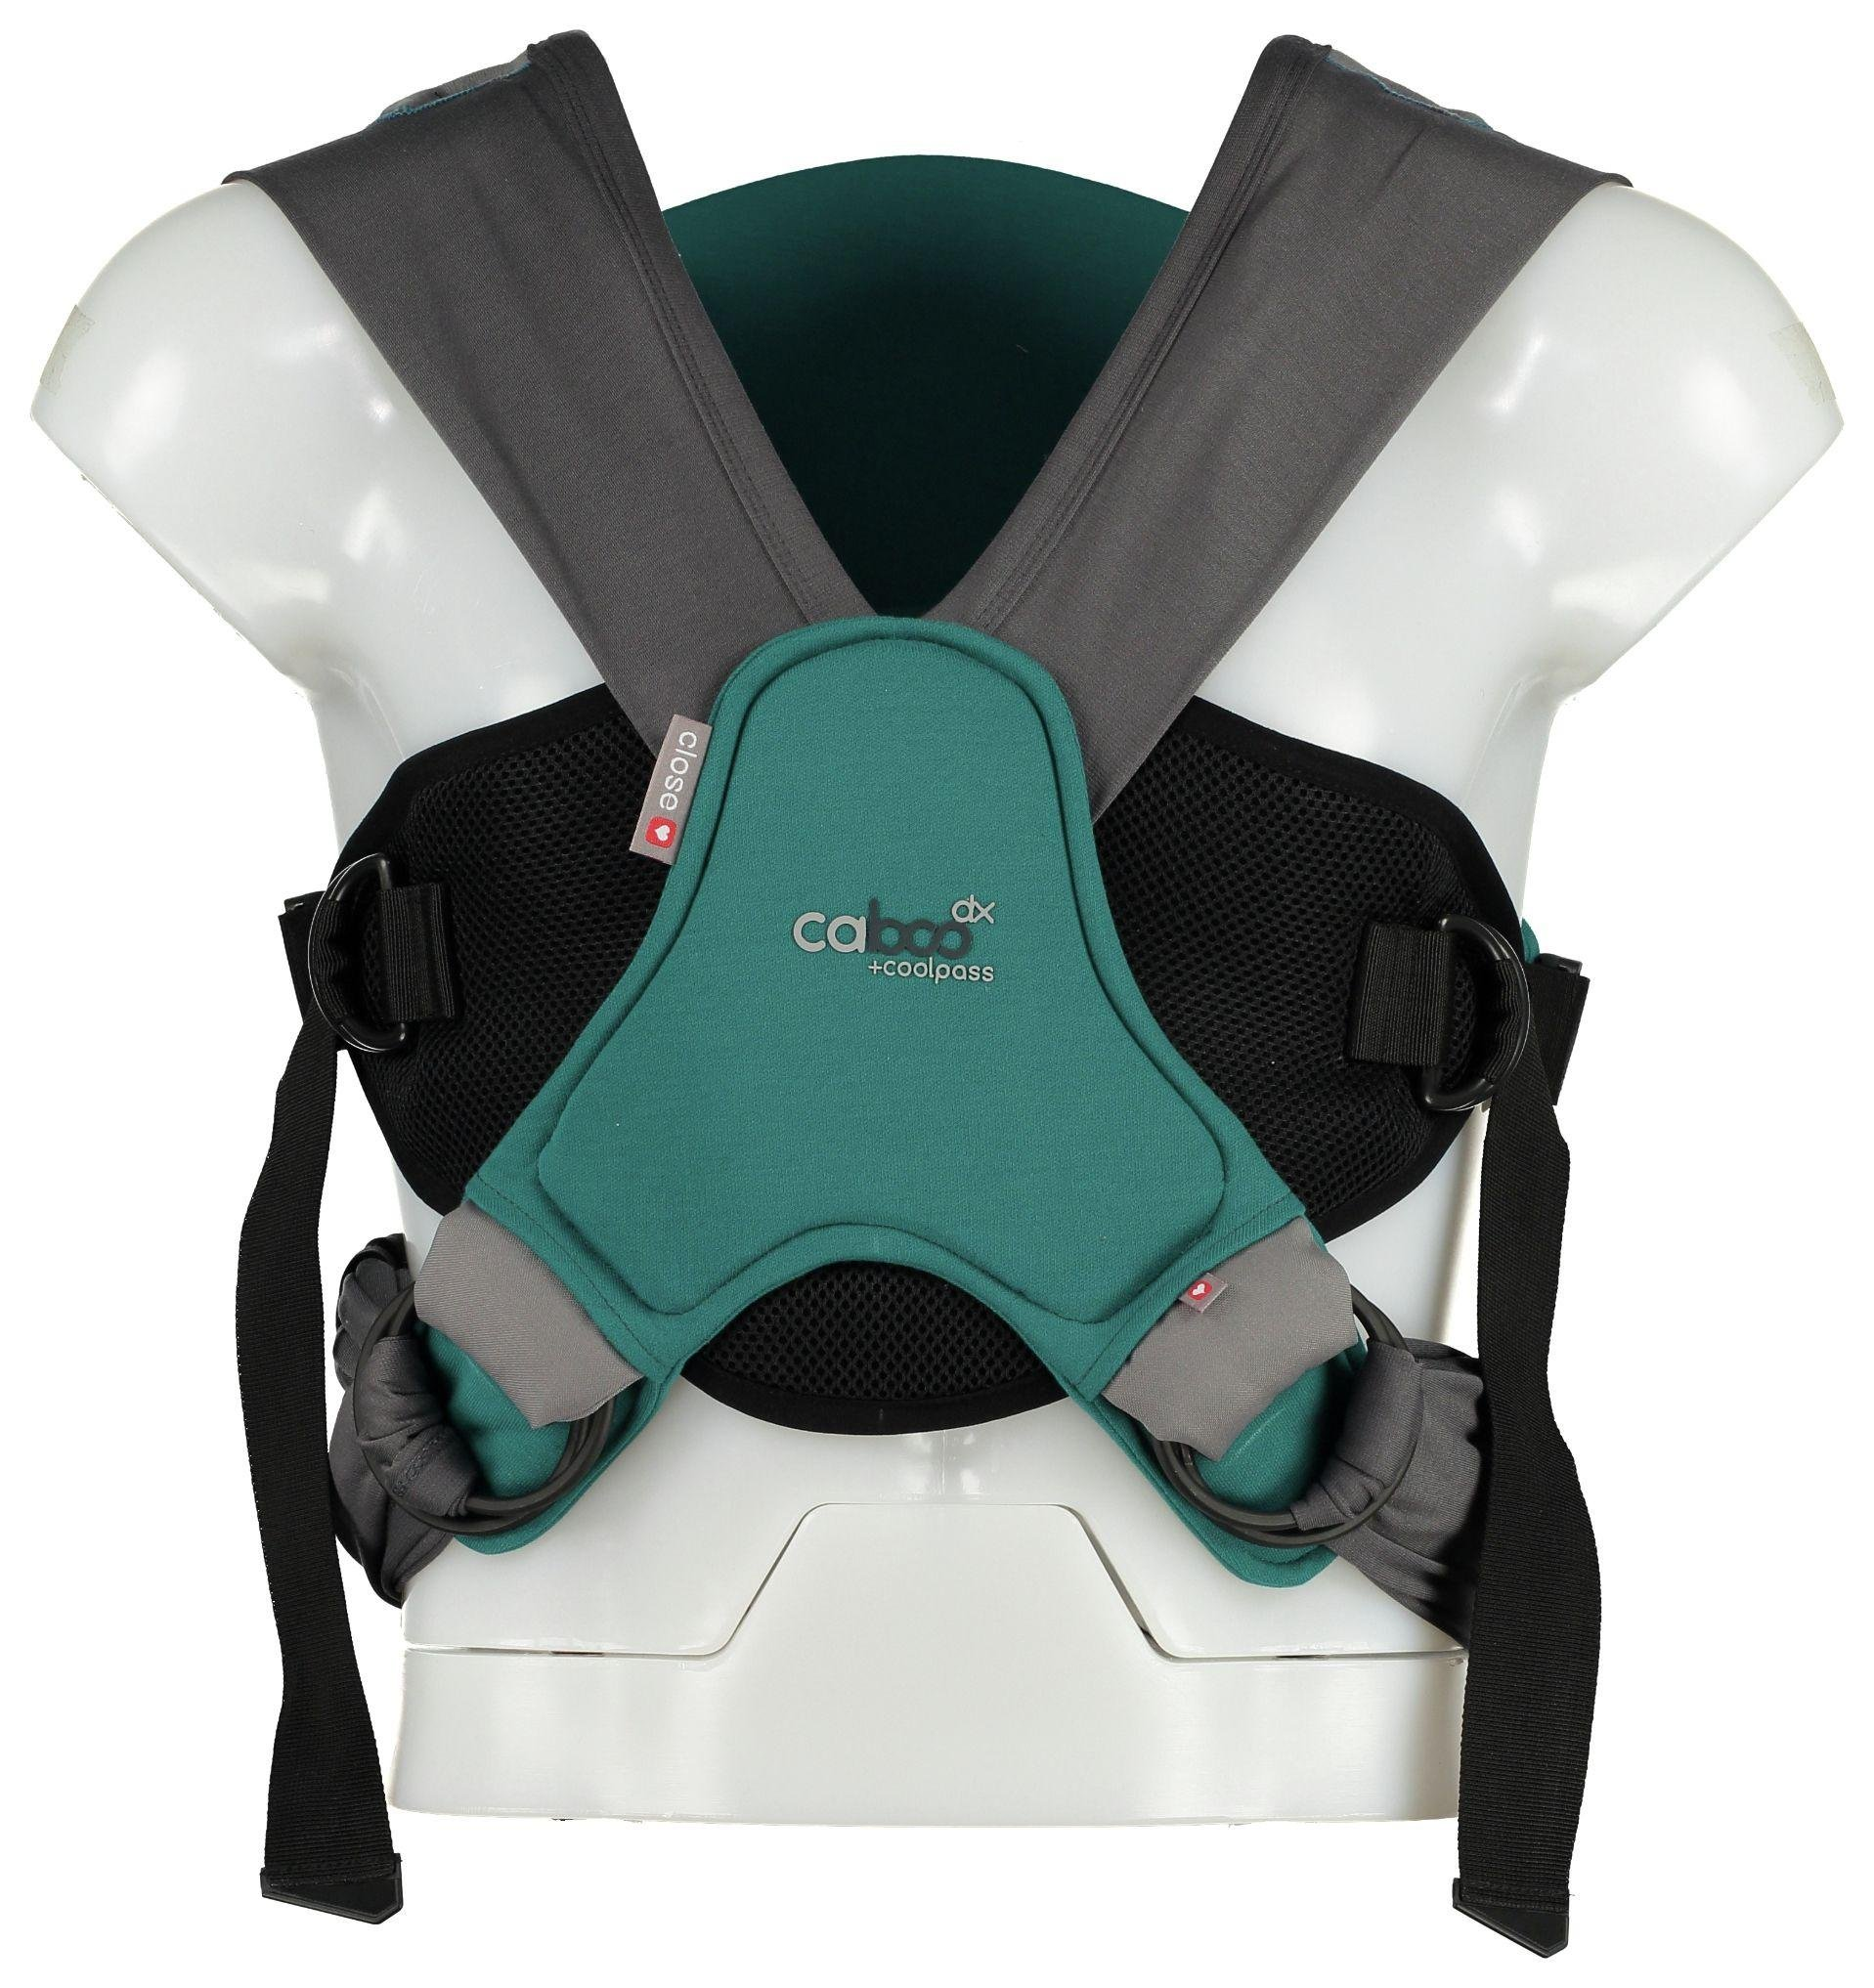 Image of Caboo DX Coolpass Baby - Carrier